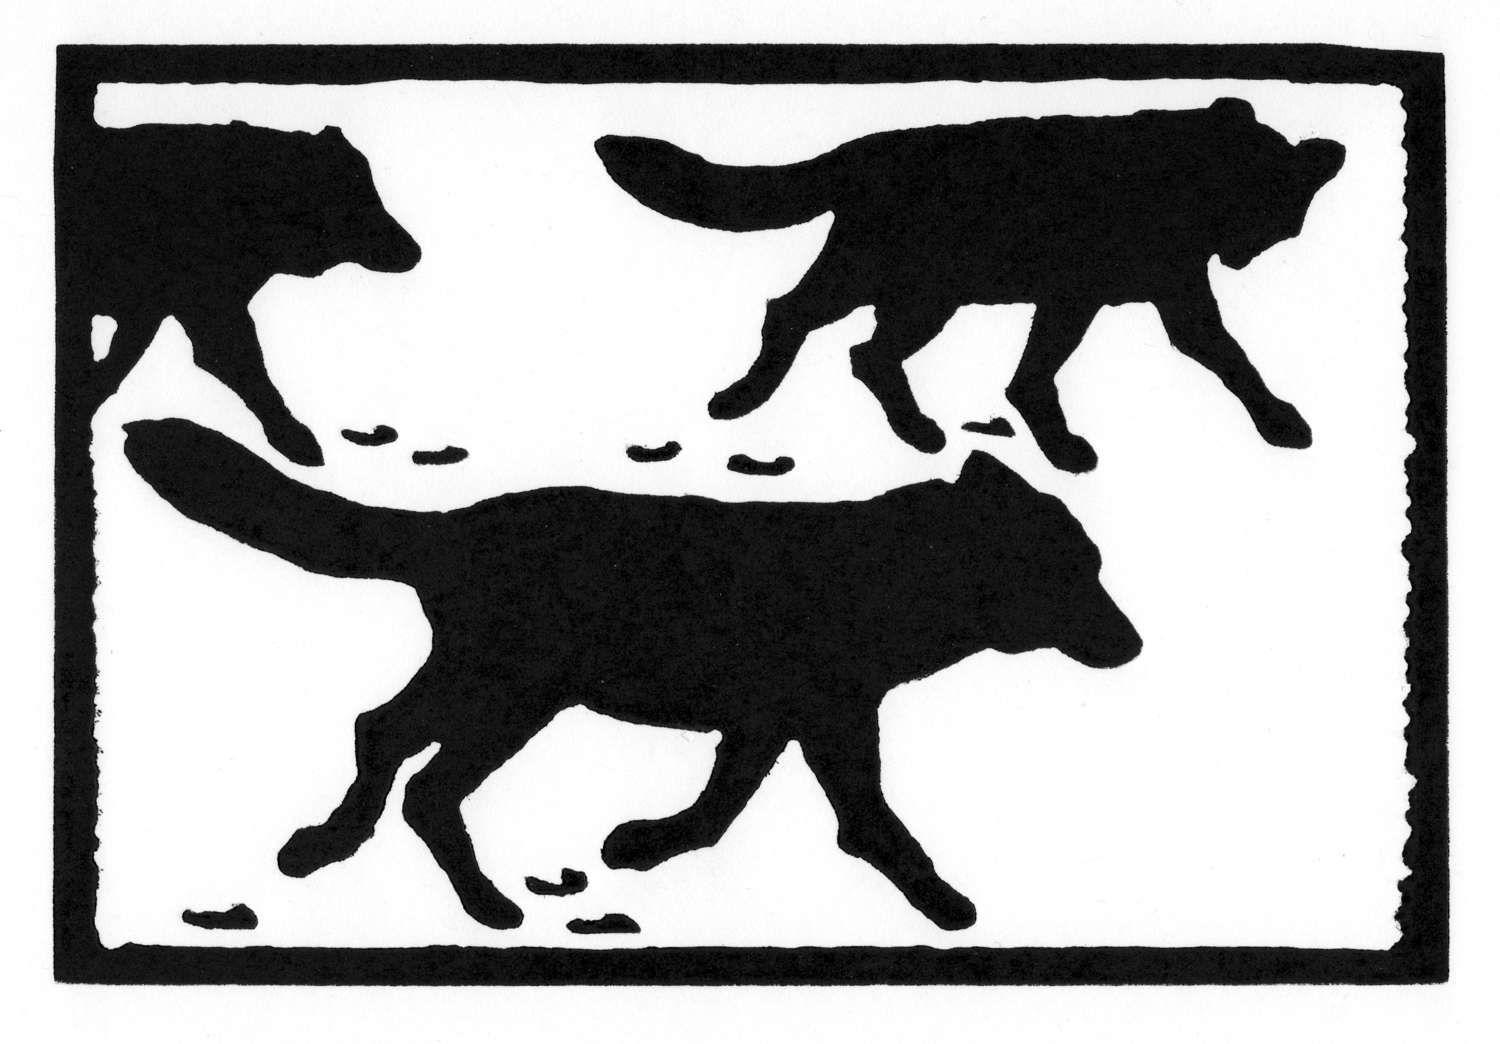 Wolf Pack - Alpha Pair • © Fred Montague  $48 • image 8 x 5.5 • mat 14 x 11  Edition size: 88 • status: available